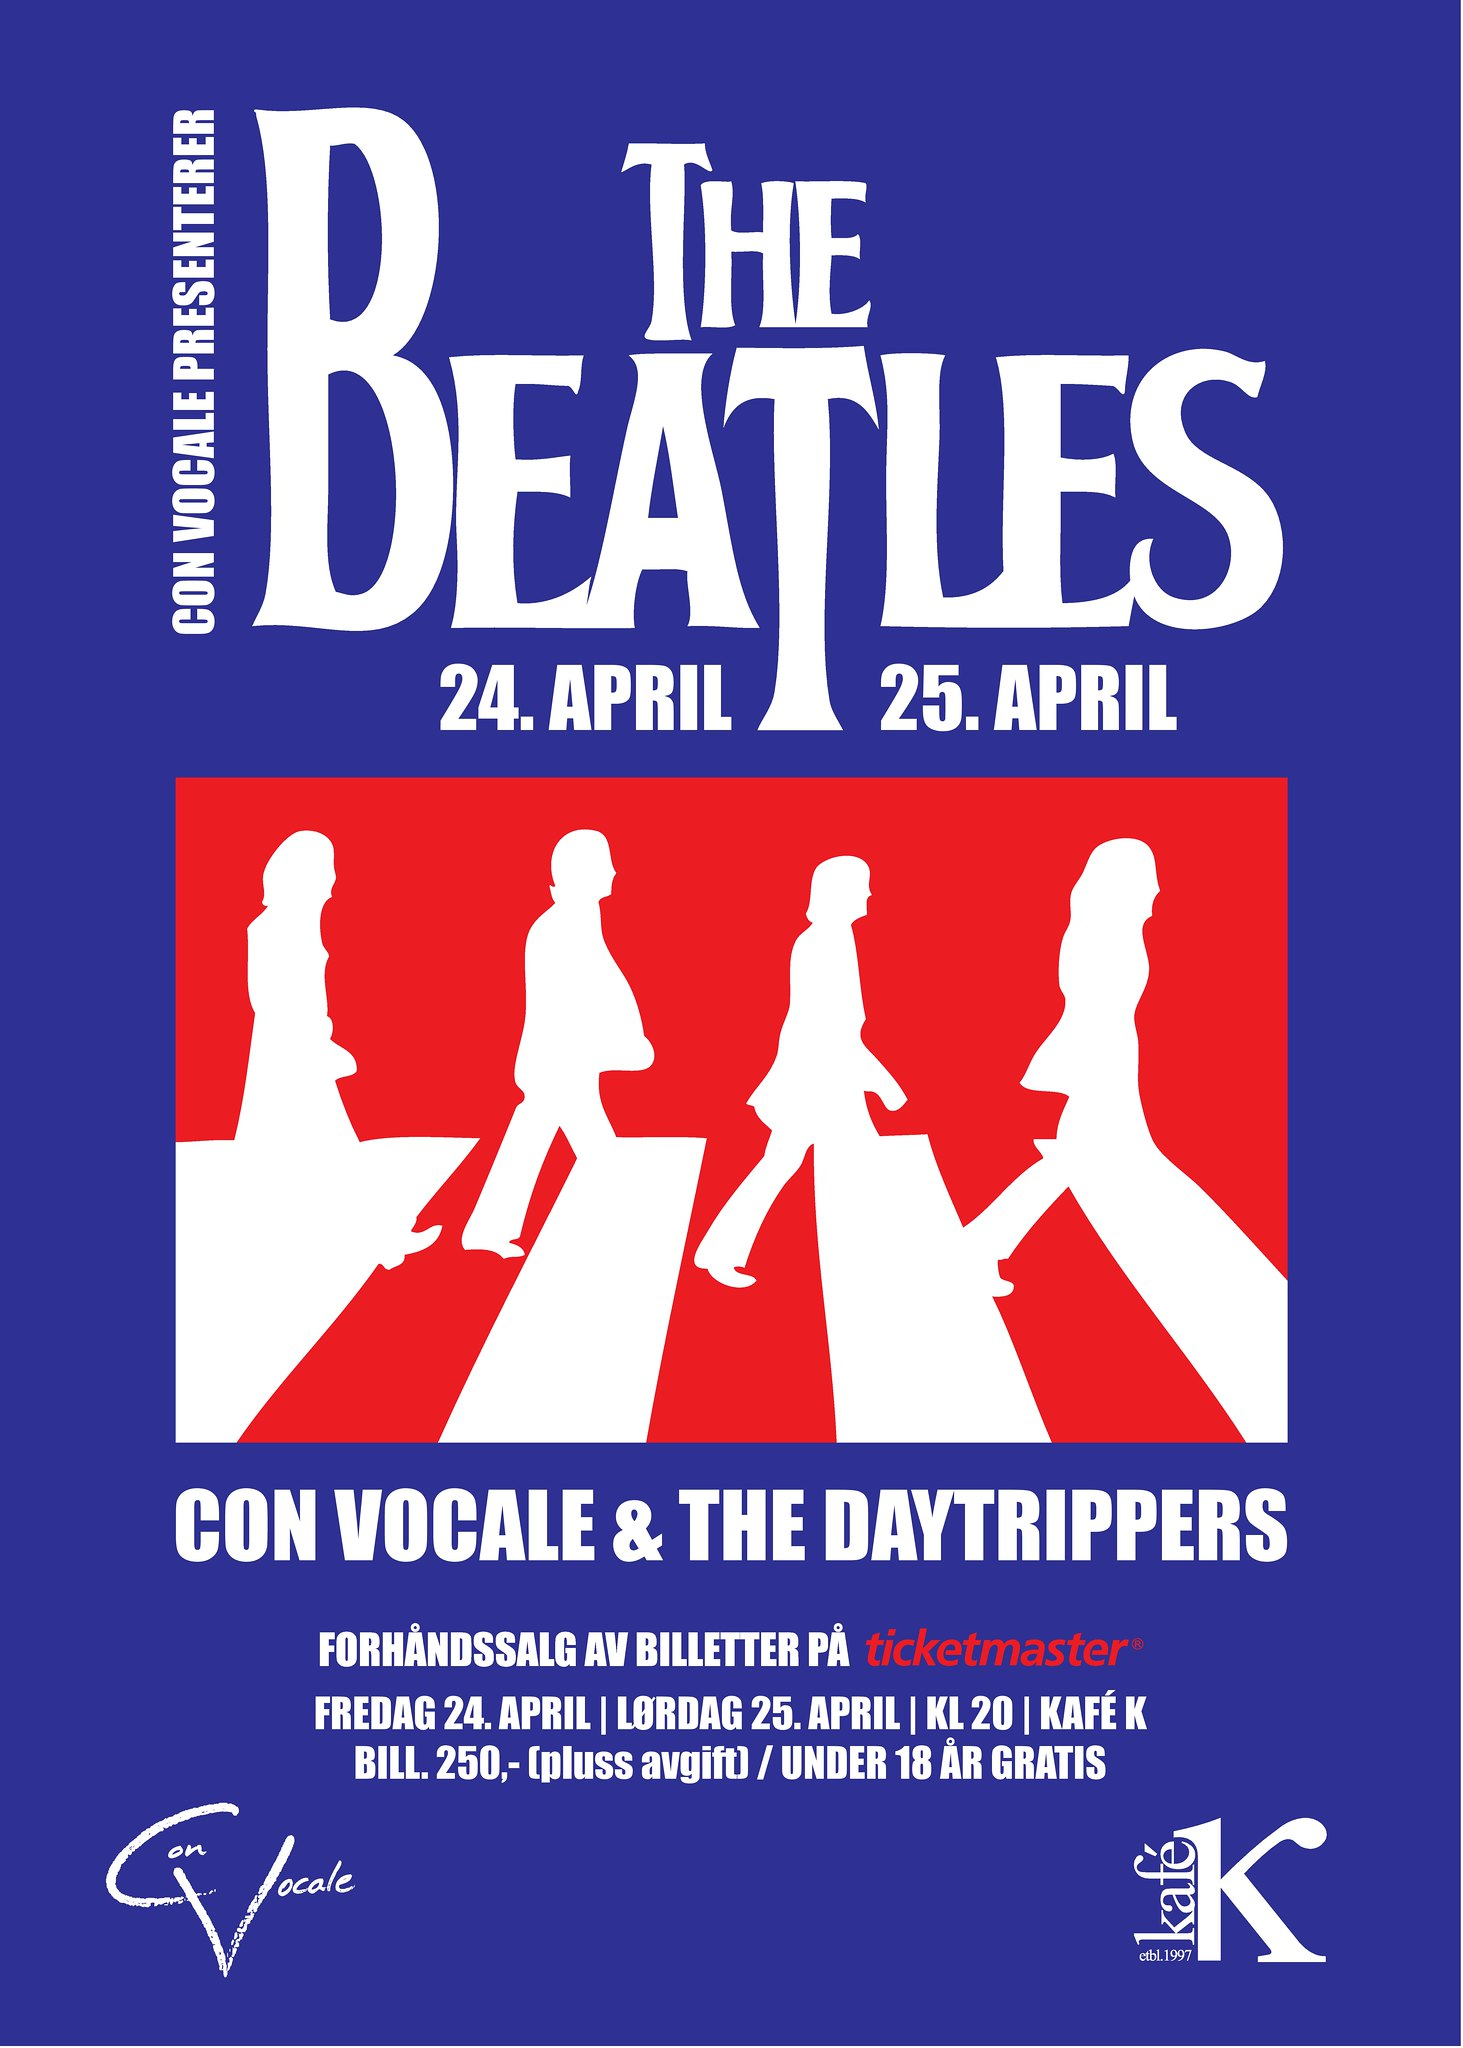 Beatles plakat 5-page-001